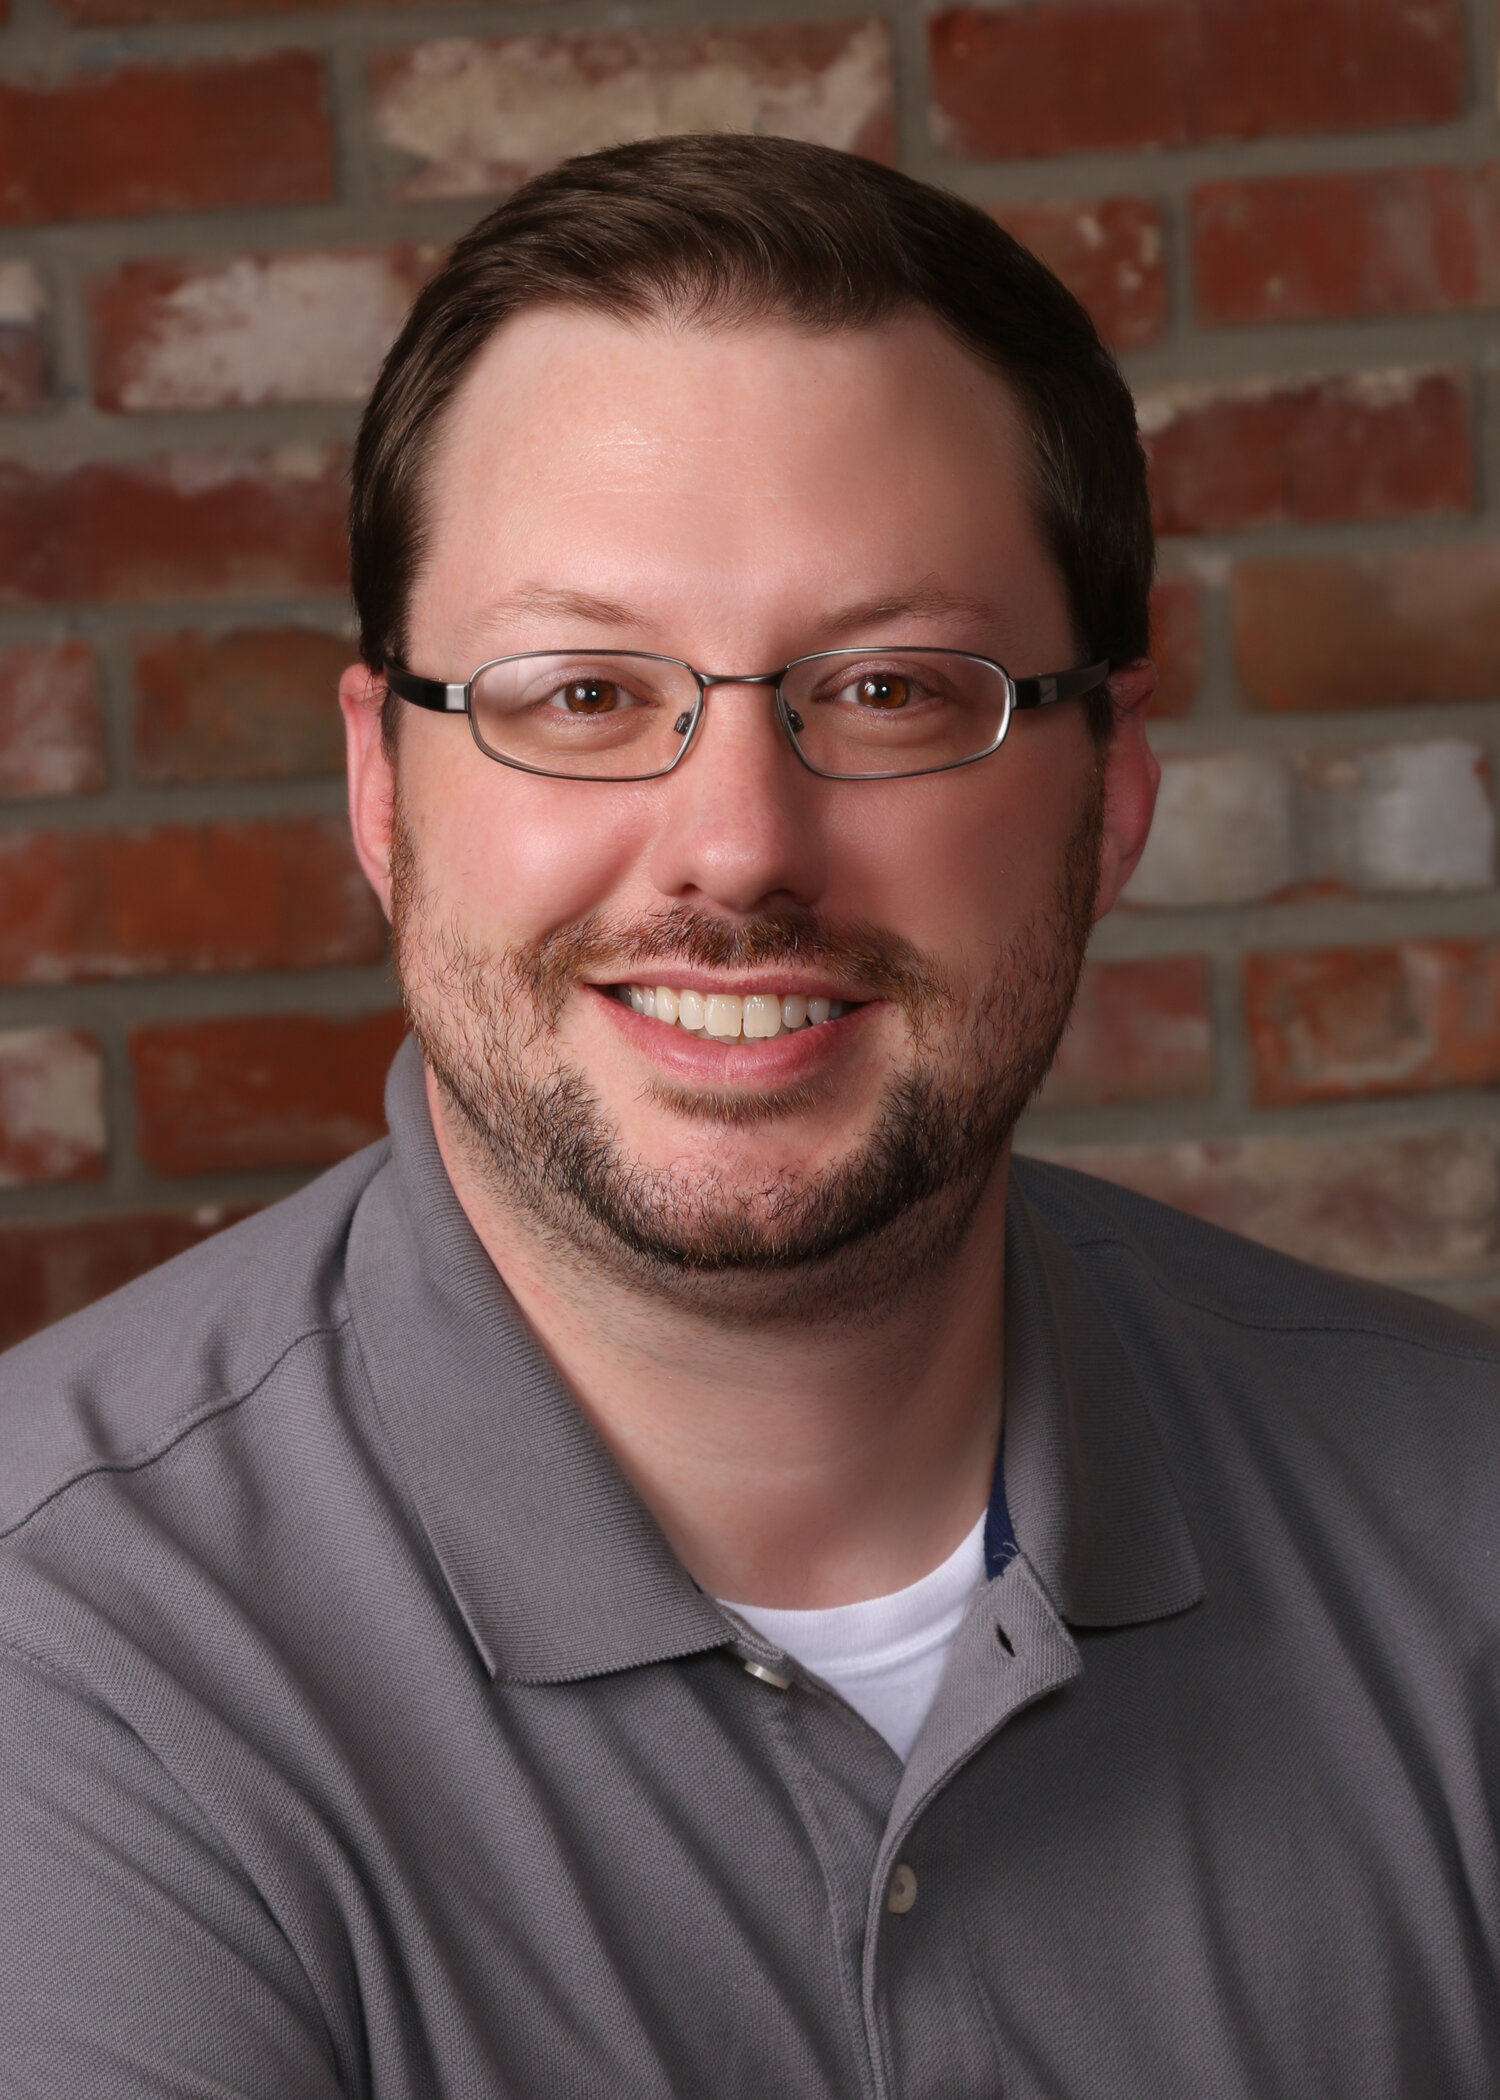 Paul Brown, Instructor - Paul Brown, a native of Greenwood, is the organist and Director of Music at Immaculate Heart of Mary Catholic Church, a Registered Nurse with Sunflower Home Health of Greenwood, and an instructor at the Viking Cooking School. He received his Bachelor's Degree from the University of Mississippi, where he studied music education, and received advanced vocal and piano training at Peabody Conservatory of Music in Baltimore, MD. He has been a soloist with the UM Symphony, USM Symphony, Peabody Symphony, and the Concert Artists of Baltimore in such works as Schubert's Mass in D Major, Haydn's Heiligmesse, Beethoven's Choral Fantasy, Puccini's Gloria, and Handel's complete Messiah. He has performed roles with UM Opera Theatre, Peabody Opera Theatre, and Opera Vivente, and has been a chorister with Baltimore Lyric Opera. Locally, Paul has been both a piano and vocal recitalist and is the Director of The Greenwood Chorale.